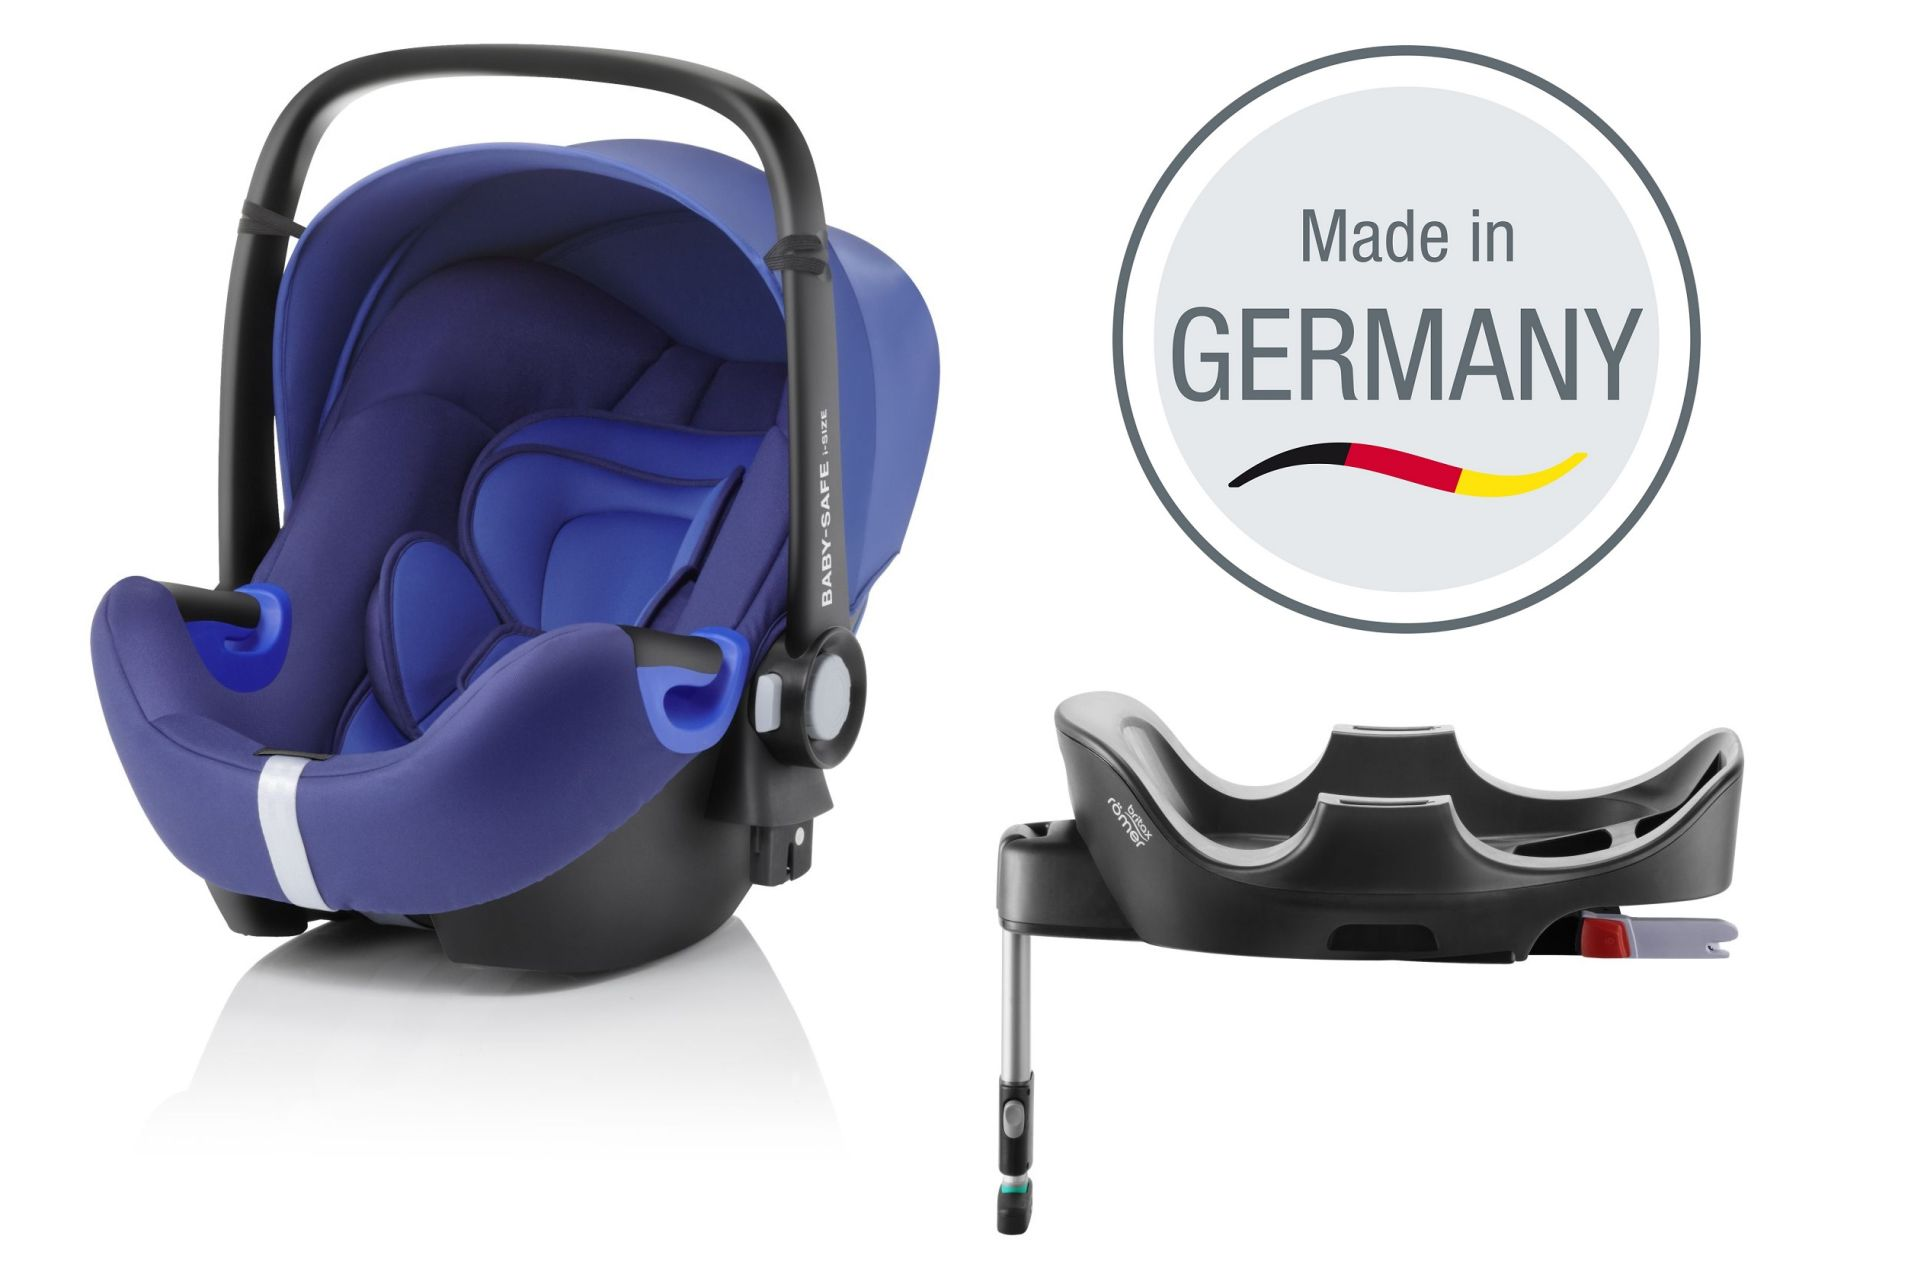 britax r mer infant car seat baby safe 2 i size including flex base 2018 ocean blue buy at. Black Bedroom Furniture Sets. Home Design Ideas